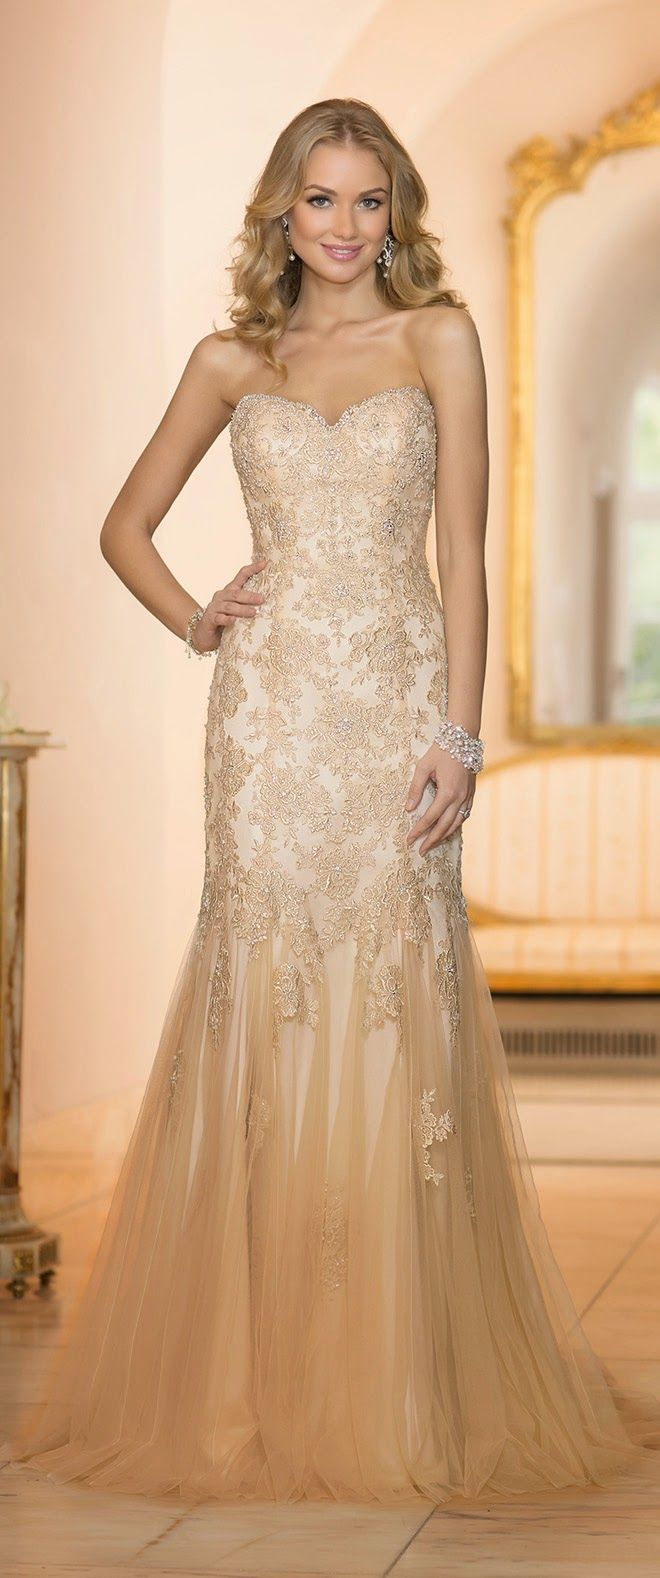 best 25 gold wedding gown colors ideas only on pinterest bling bridesmaid dress lace bridal dresses and lace styles for wedding